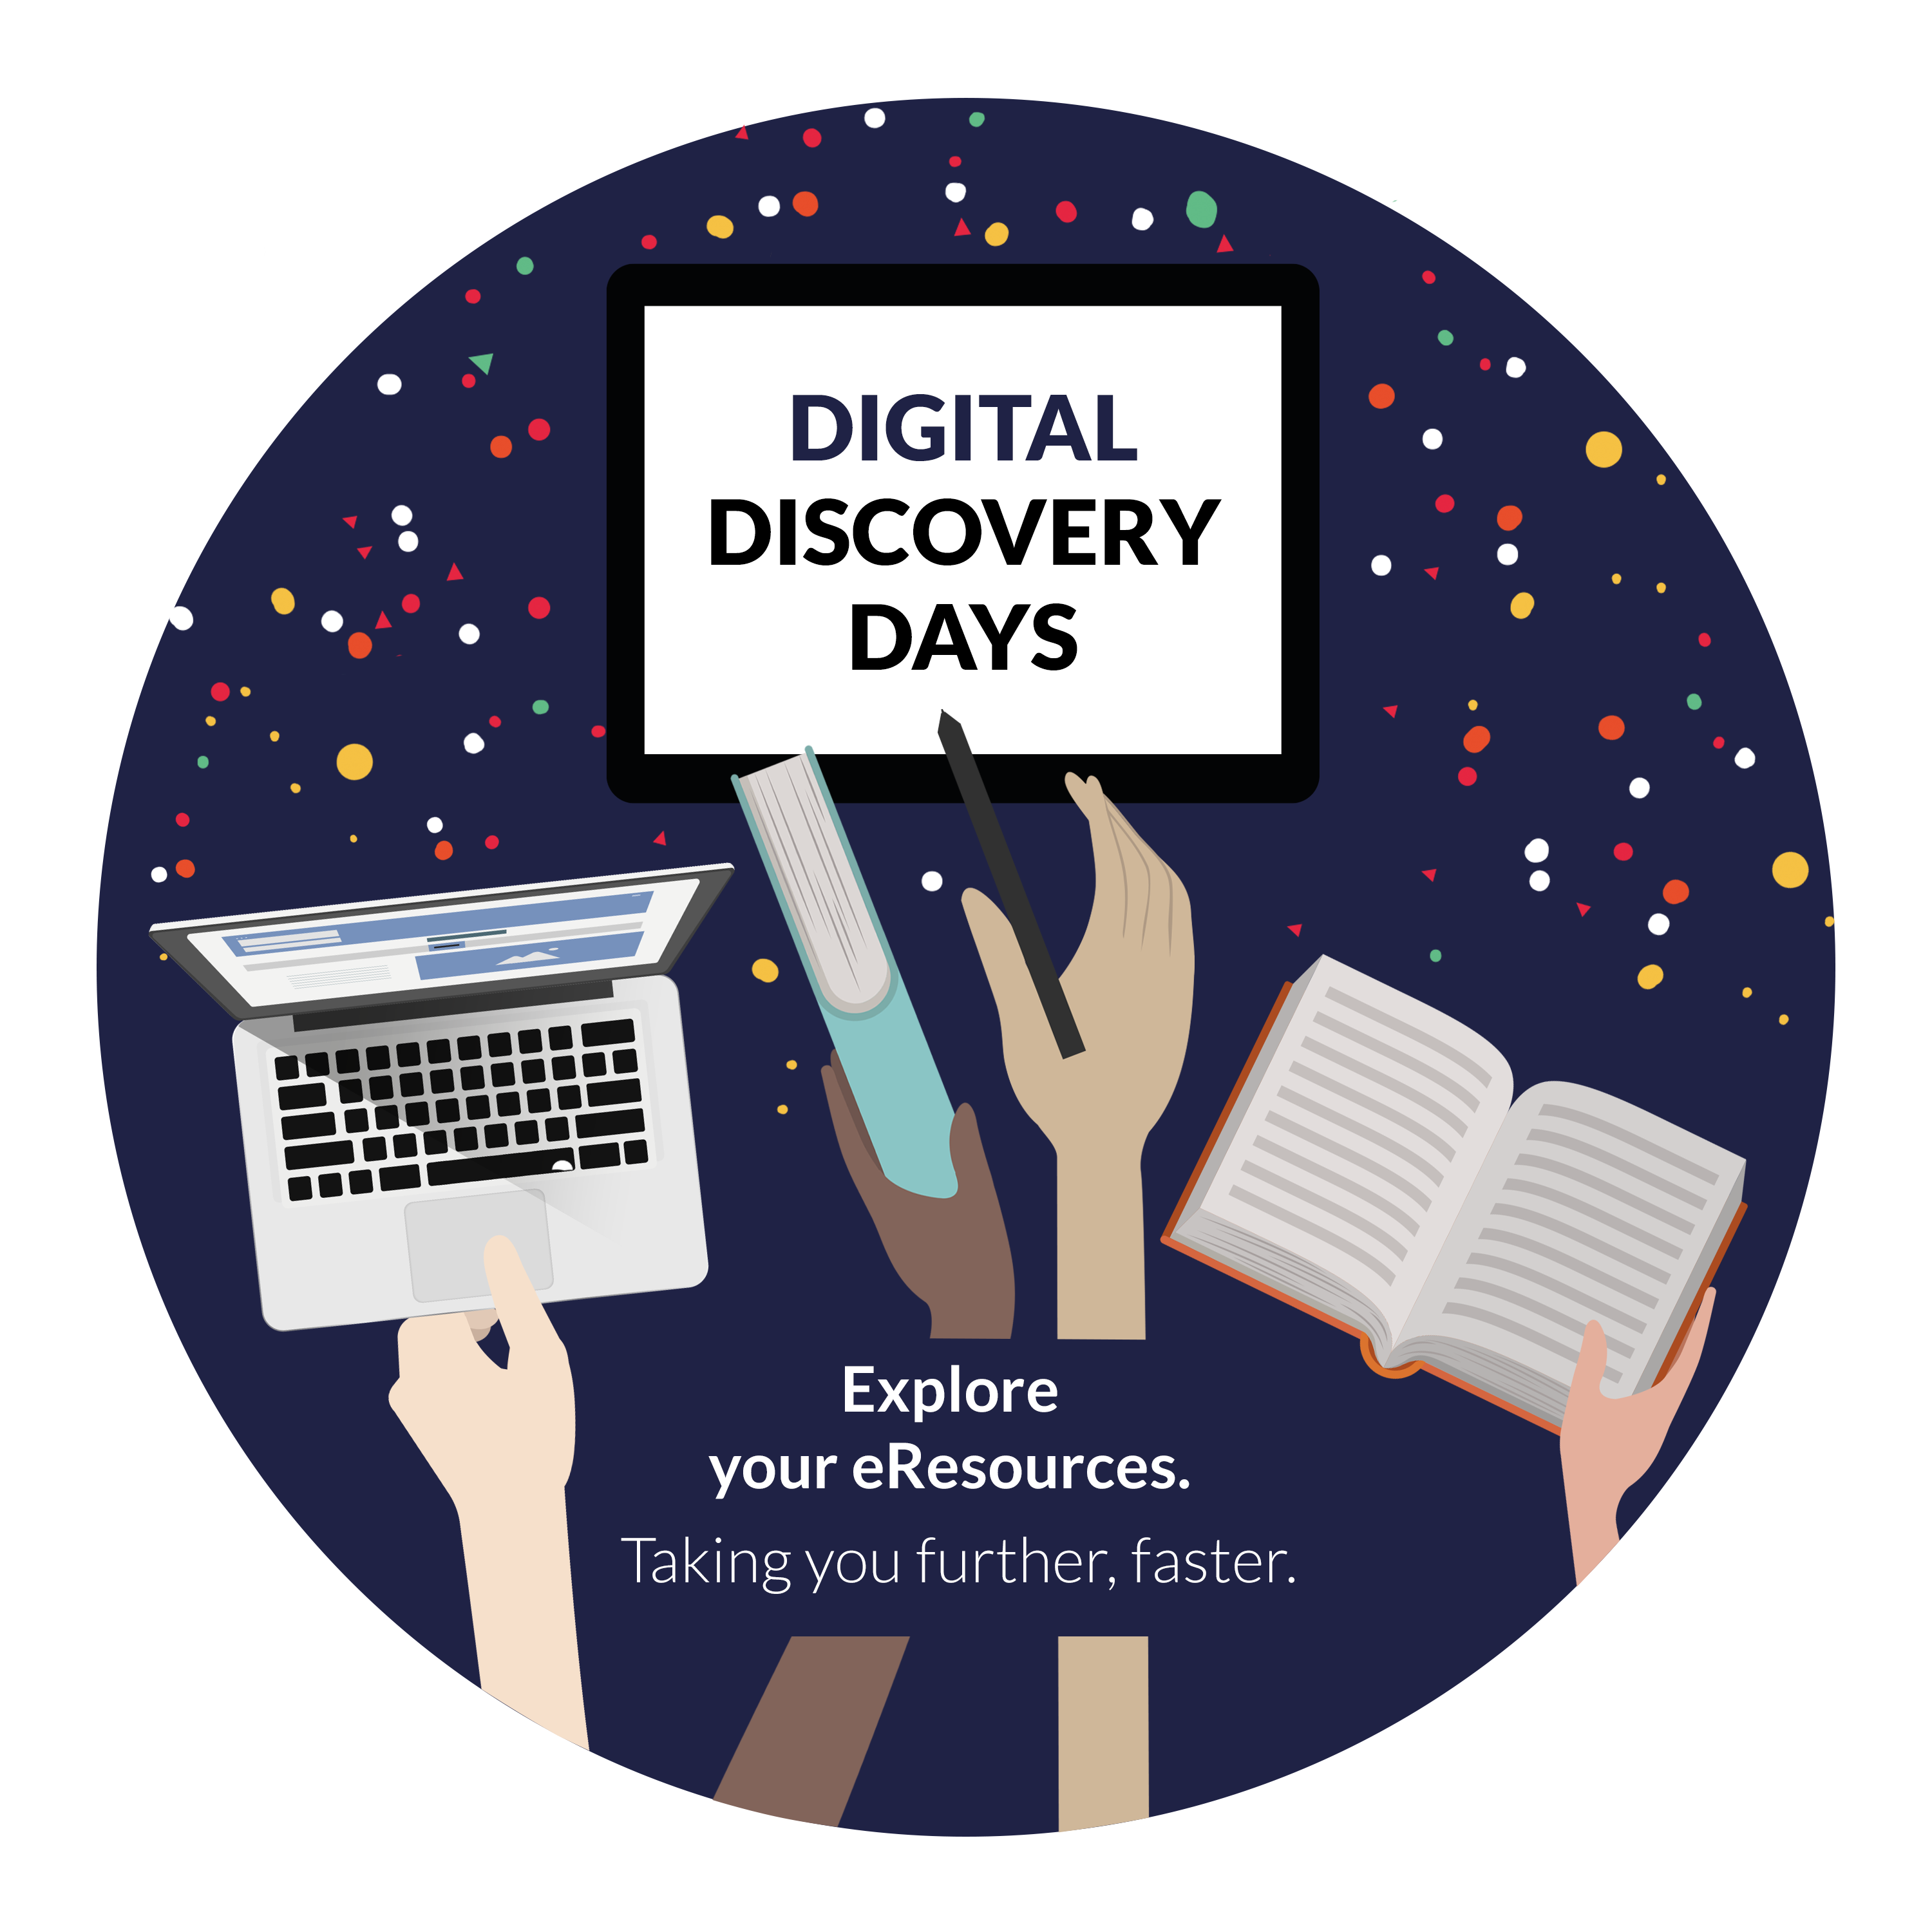 Digital Discovery Days: Elsevier (Scopus and Science Direct)